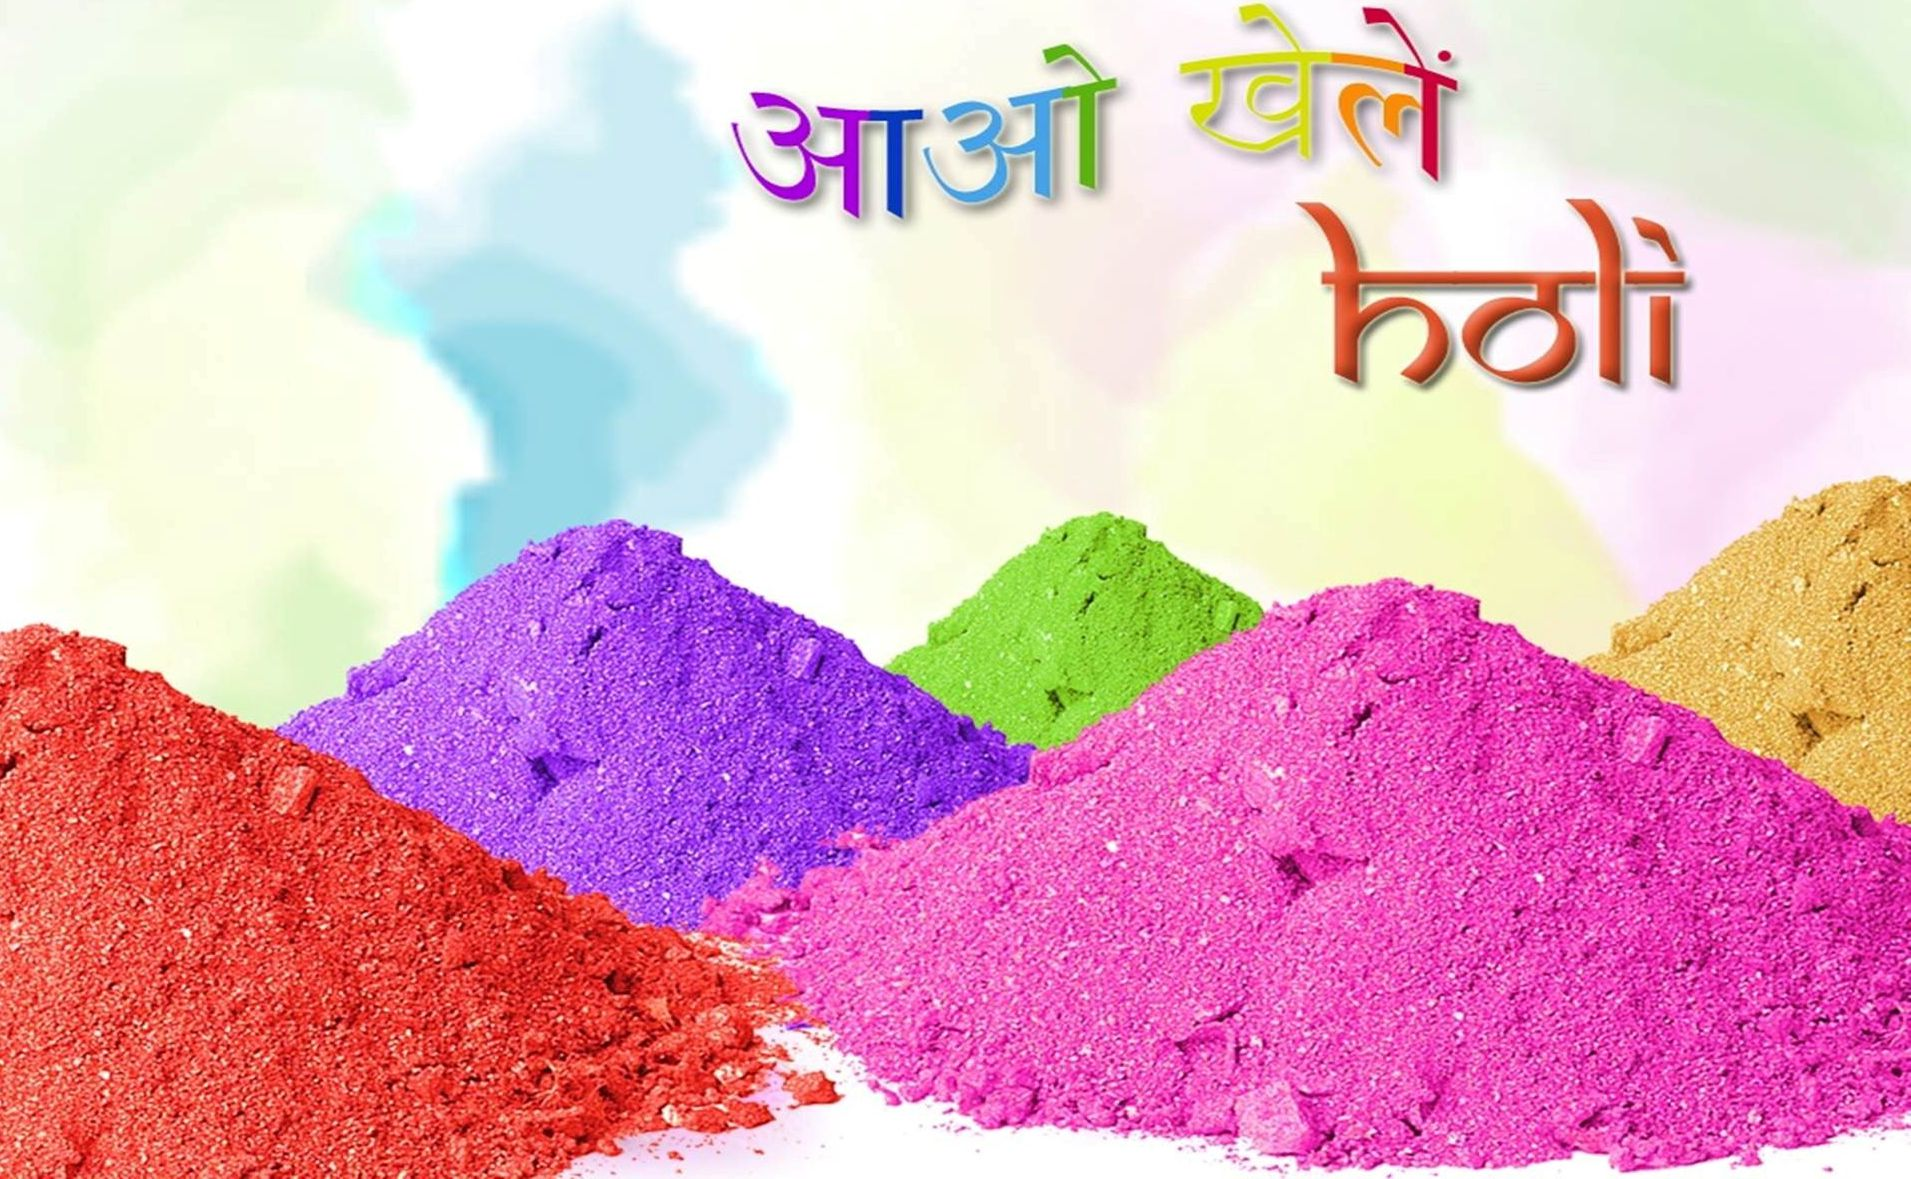 Photo of Happy Holi Images HD in Hindi, Wallpapers, Photos, Pictures